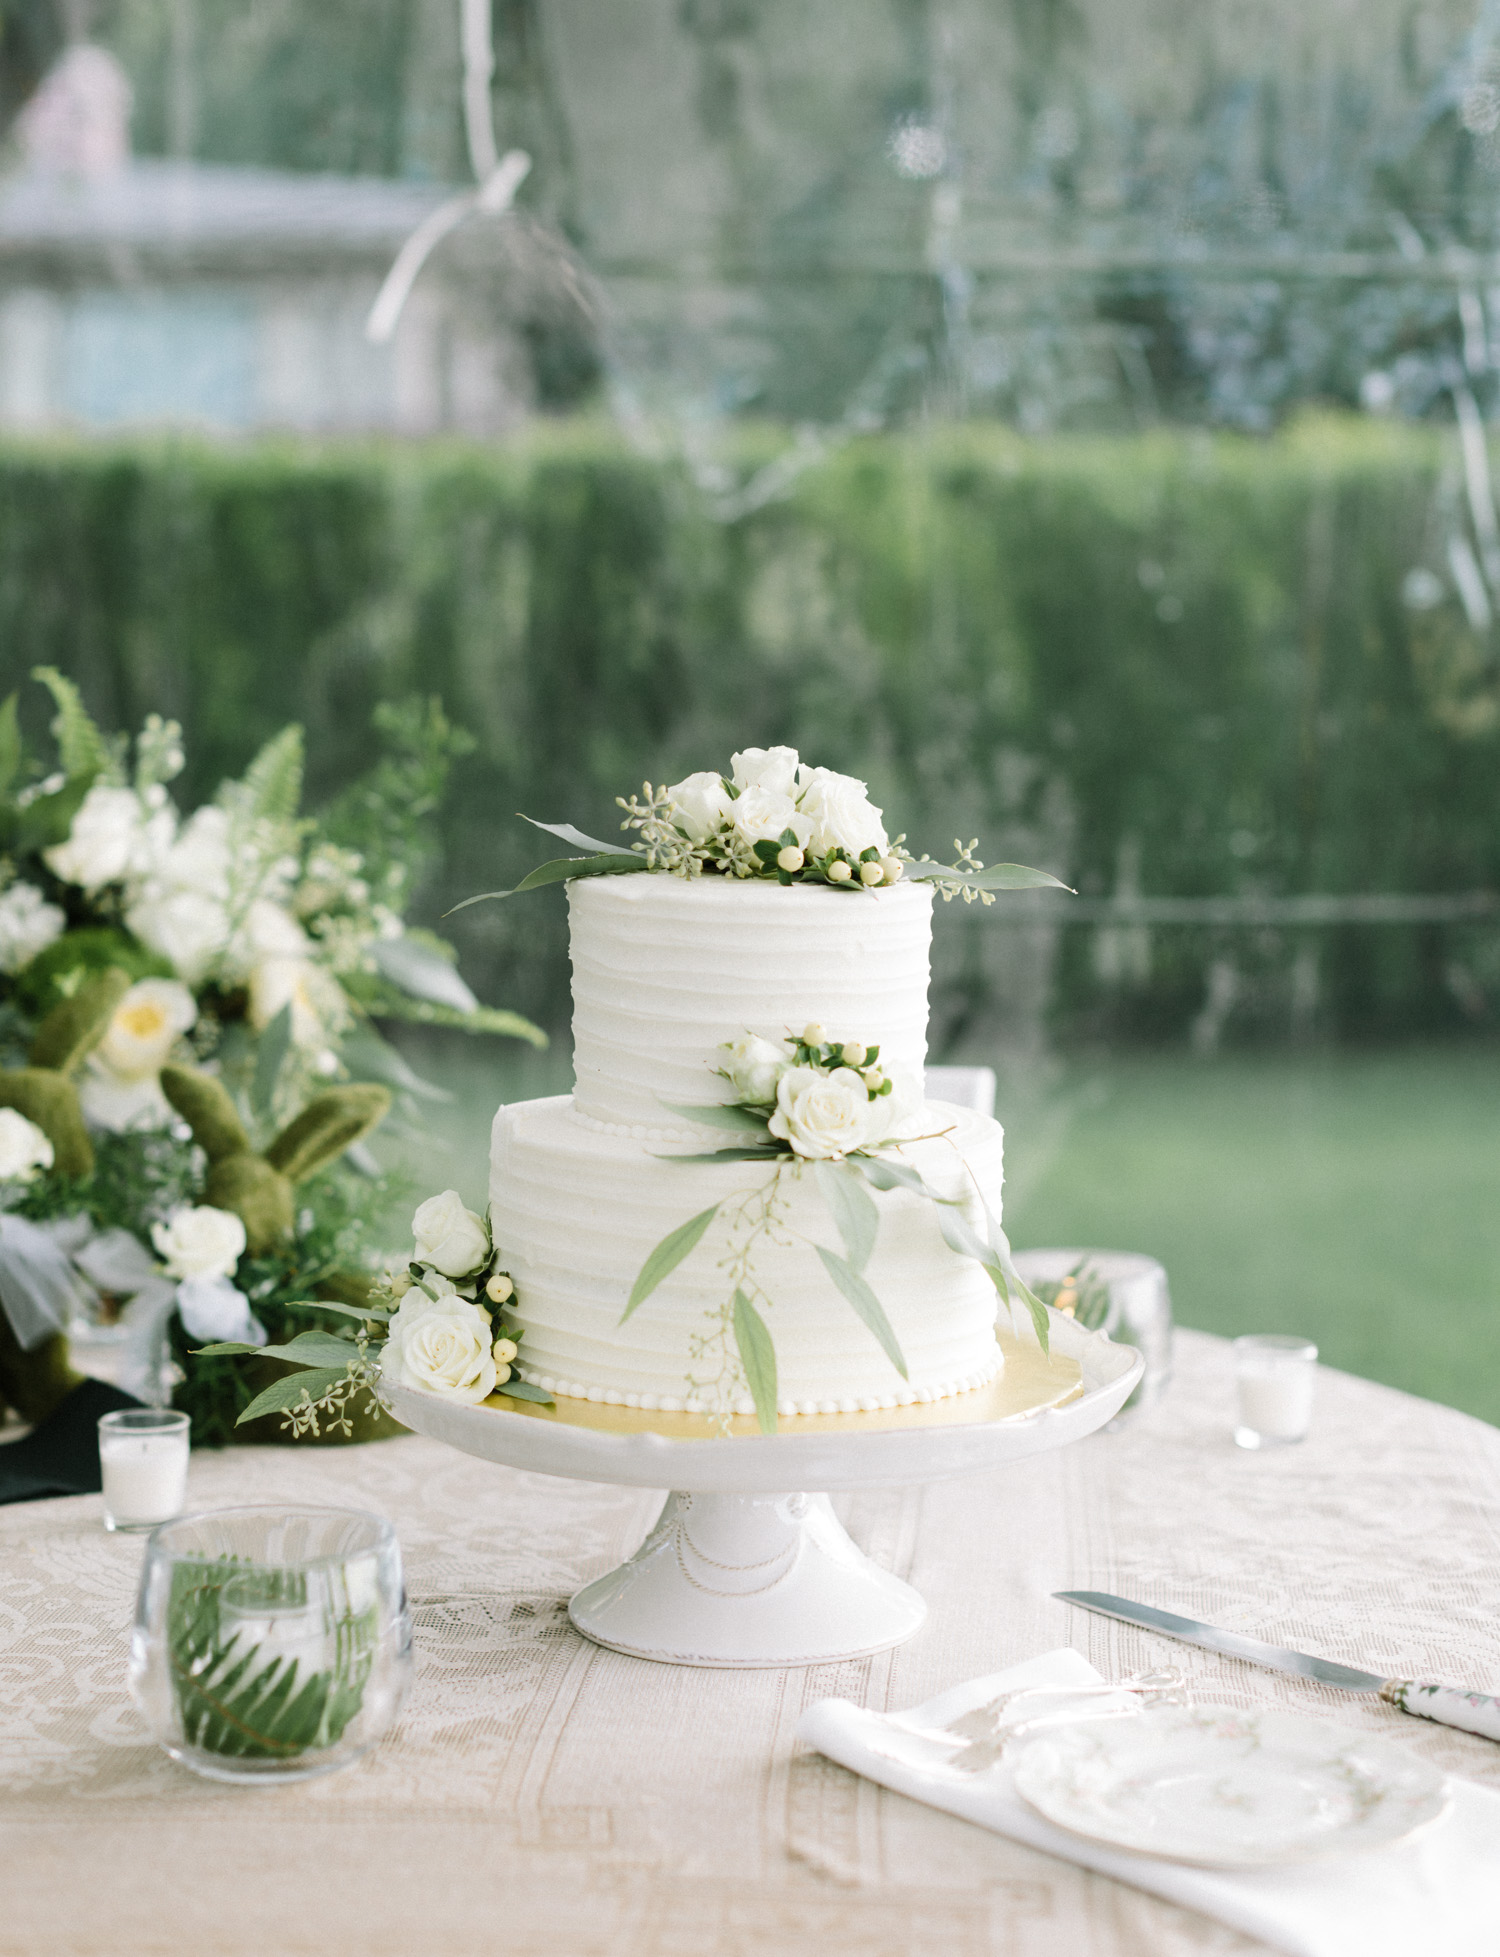 A vanilla iced wedding cake with flowers and greenery in Petoskey, northern Michigan